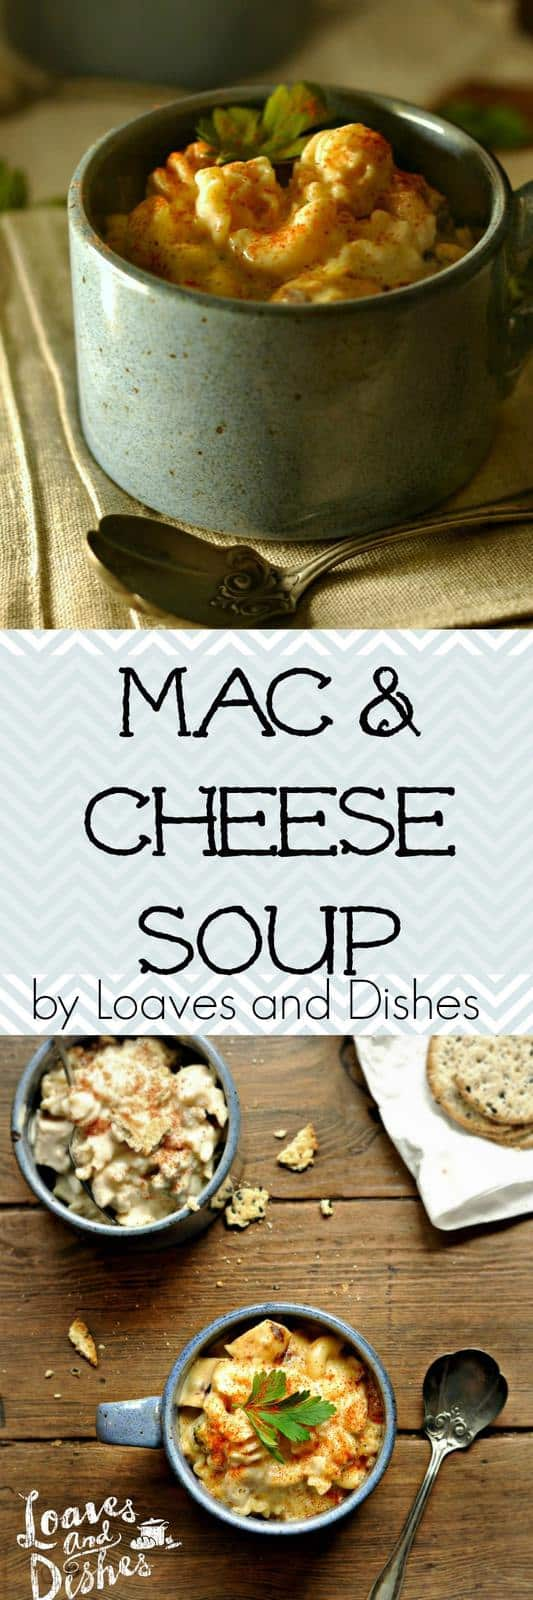 Have any left over Mac & Cheese? Make a wonderful soup in less than 30 minutes, curl up, stay warm and be comfy! www.loavesanddishes.net